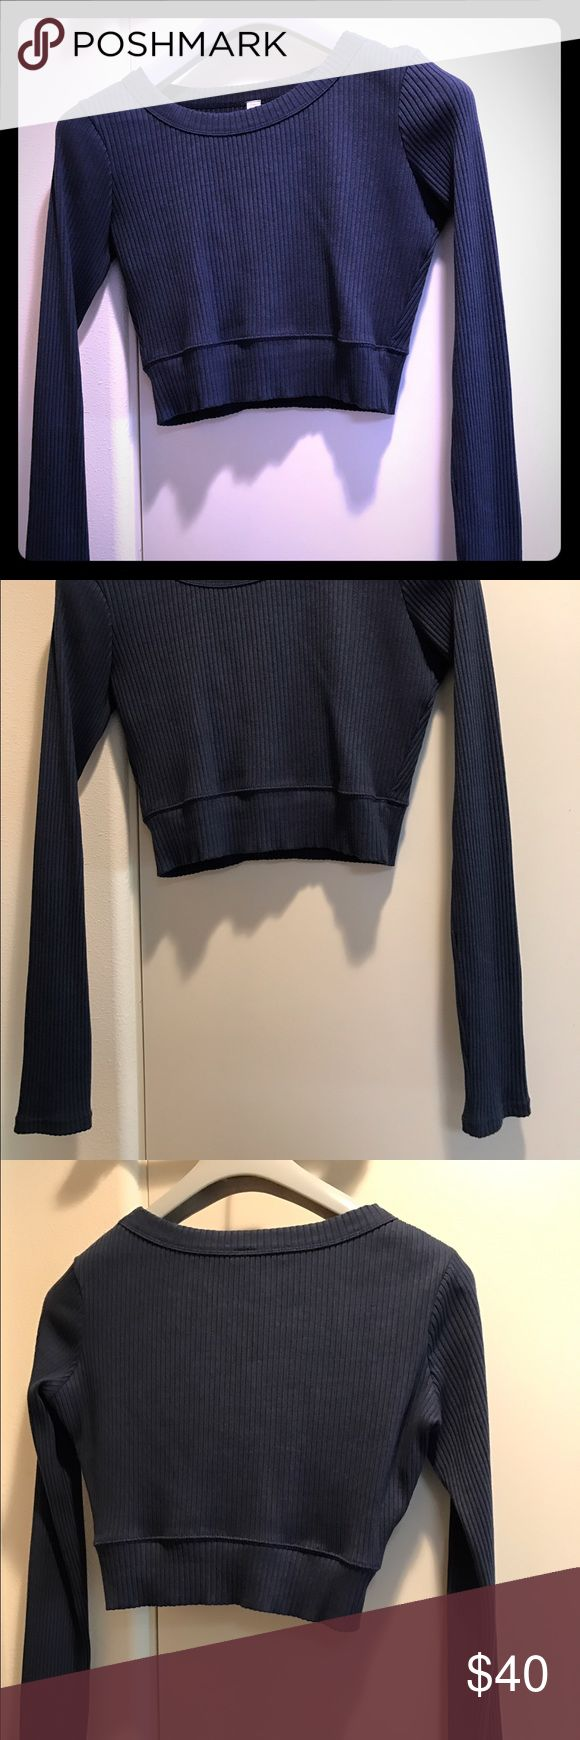 Alo cropped long sleeve sweatshirt Cute, blue, ribbed Alo cropped sweatshirt. Cotton/spandex blend, soft and flattering to your curves! ALO Yoga Tops Sweatshirts & Hoodies